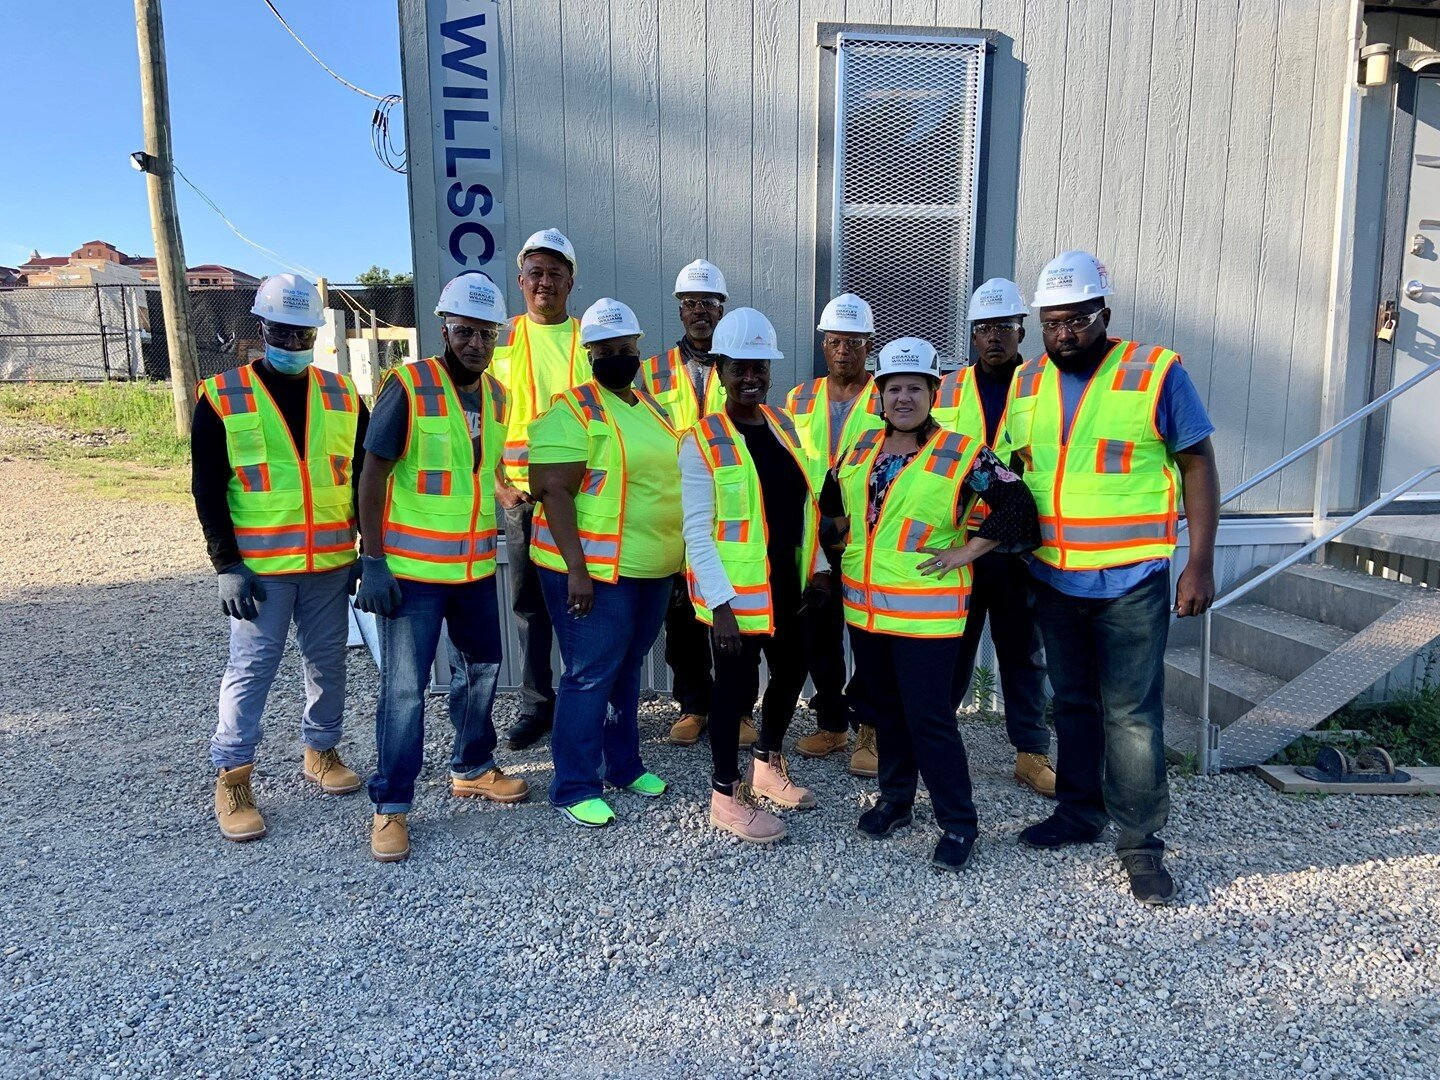 Seven new #constructionmen and #constructionwomen completed their training program and started working onsite at the 801 East Shelter project. #WashingtonDC #BuildSomething #Construction #DCconstruction